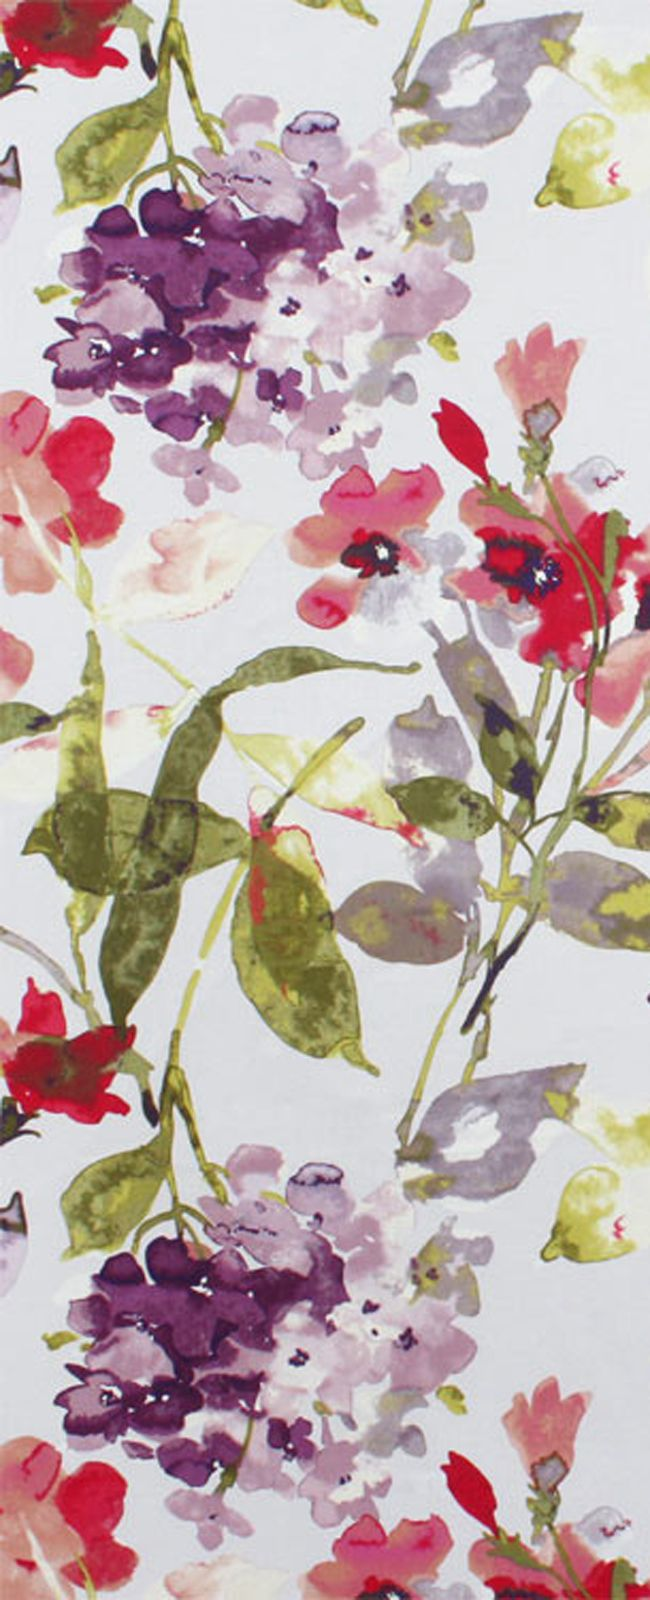 HGTV Color Study Berry floral Fabric $22.90 per yard